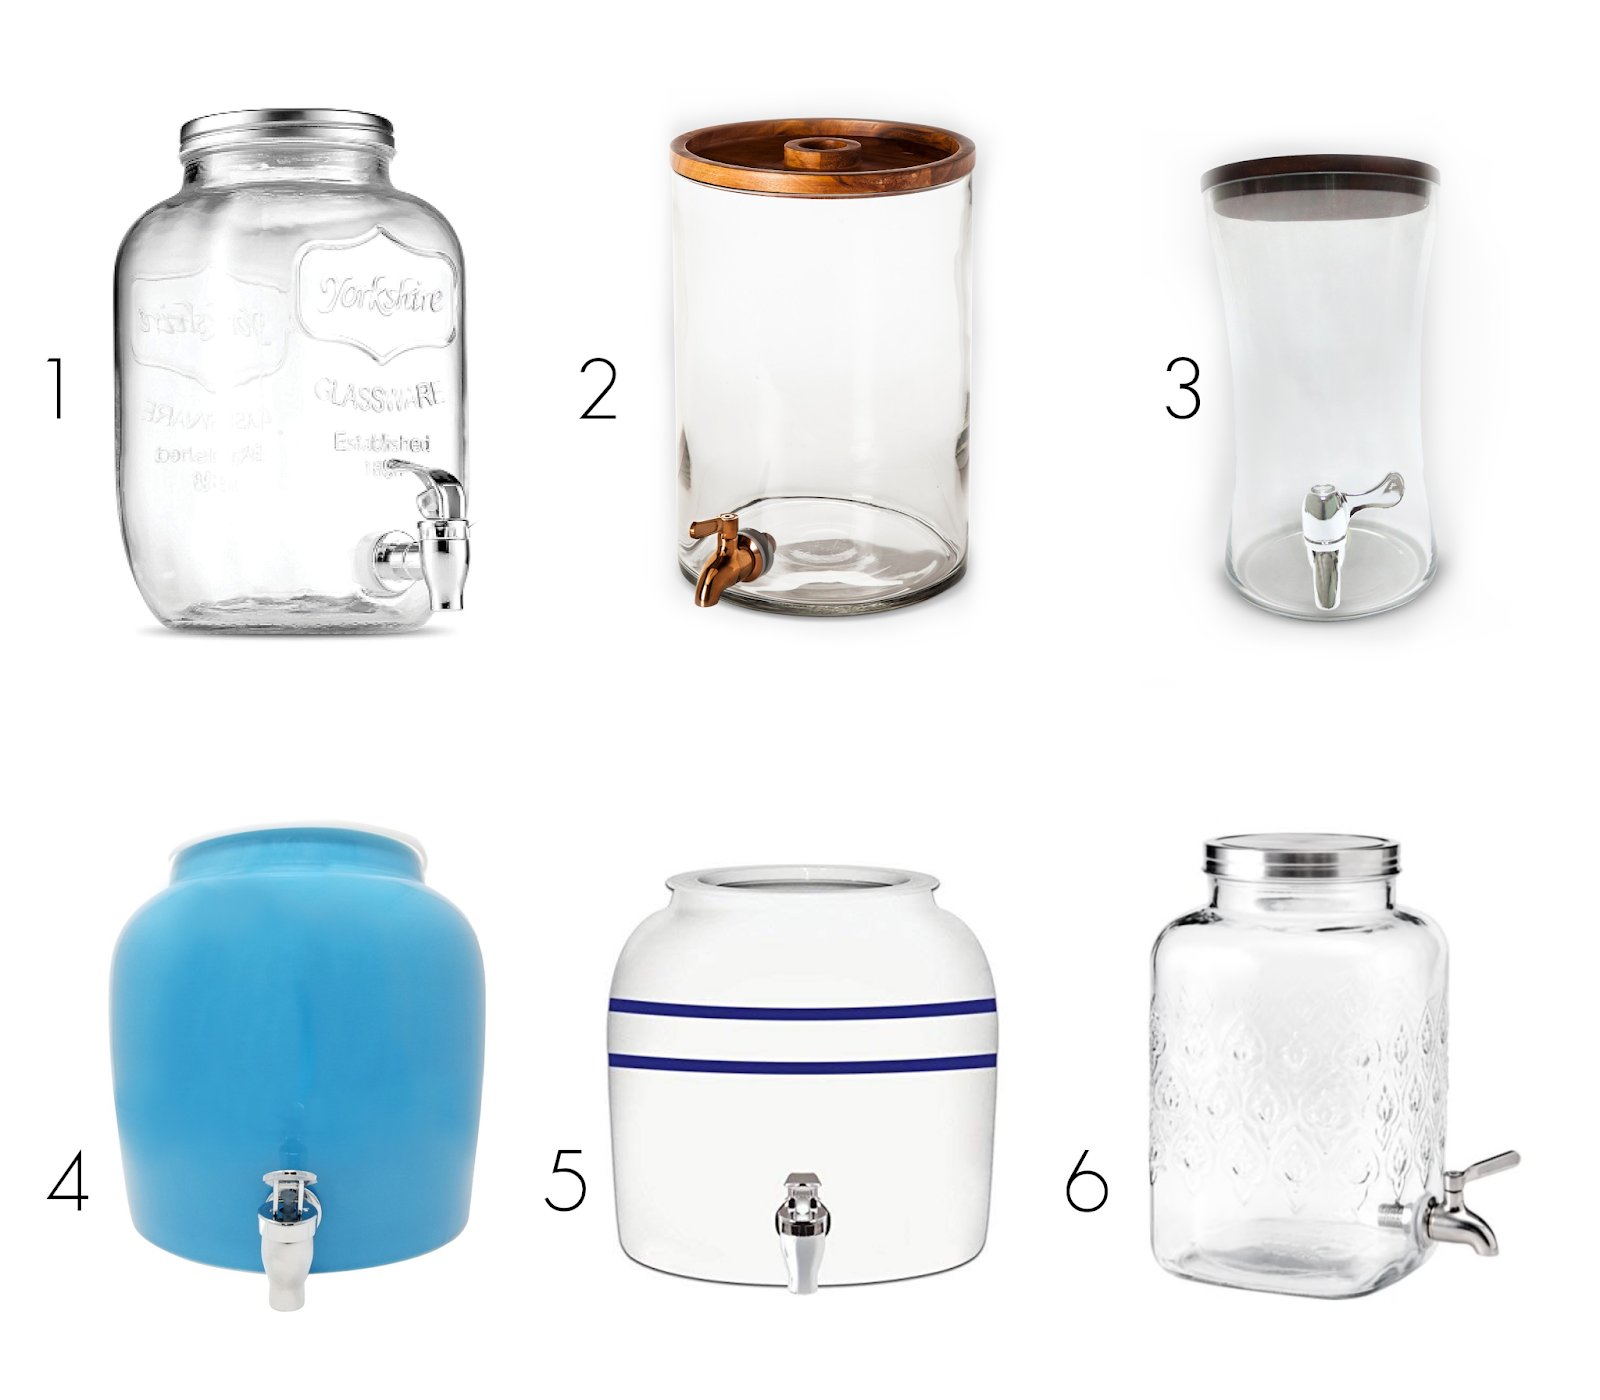 Water dispenser options that allow access for children in a Montessori environment